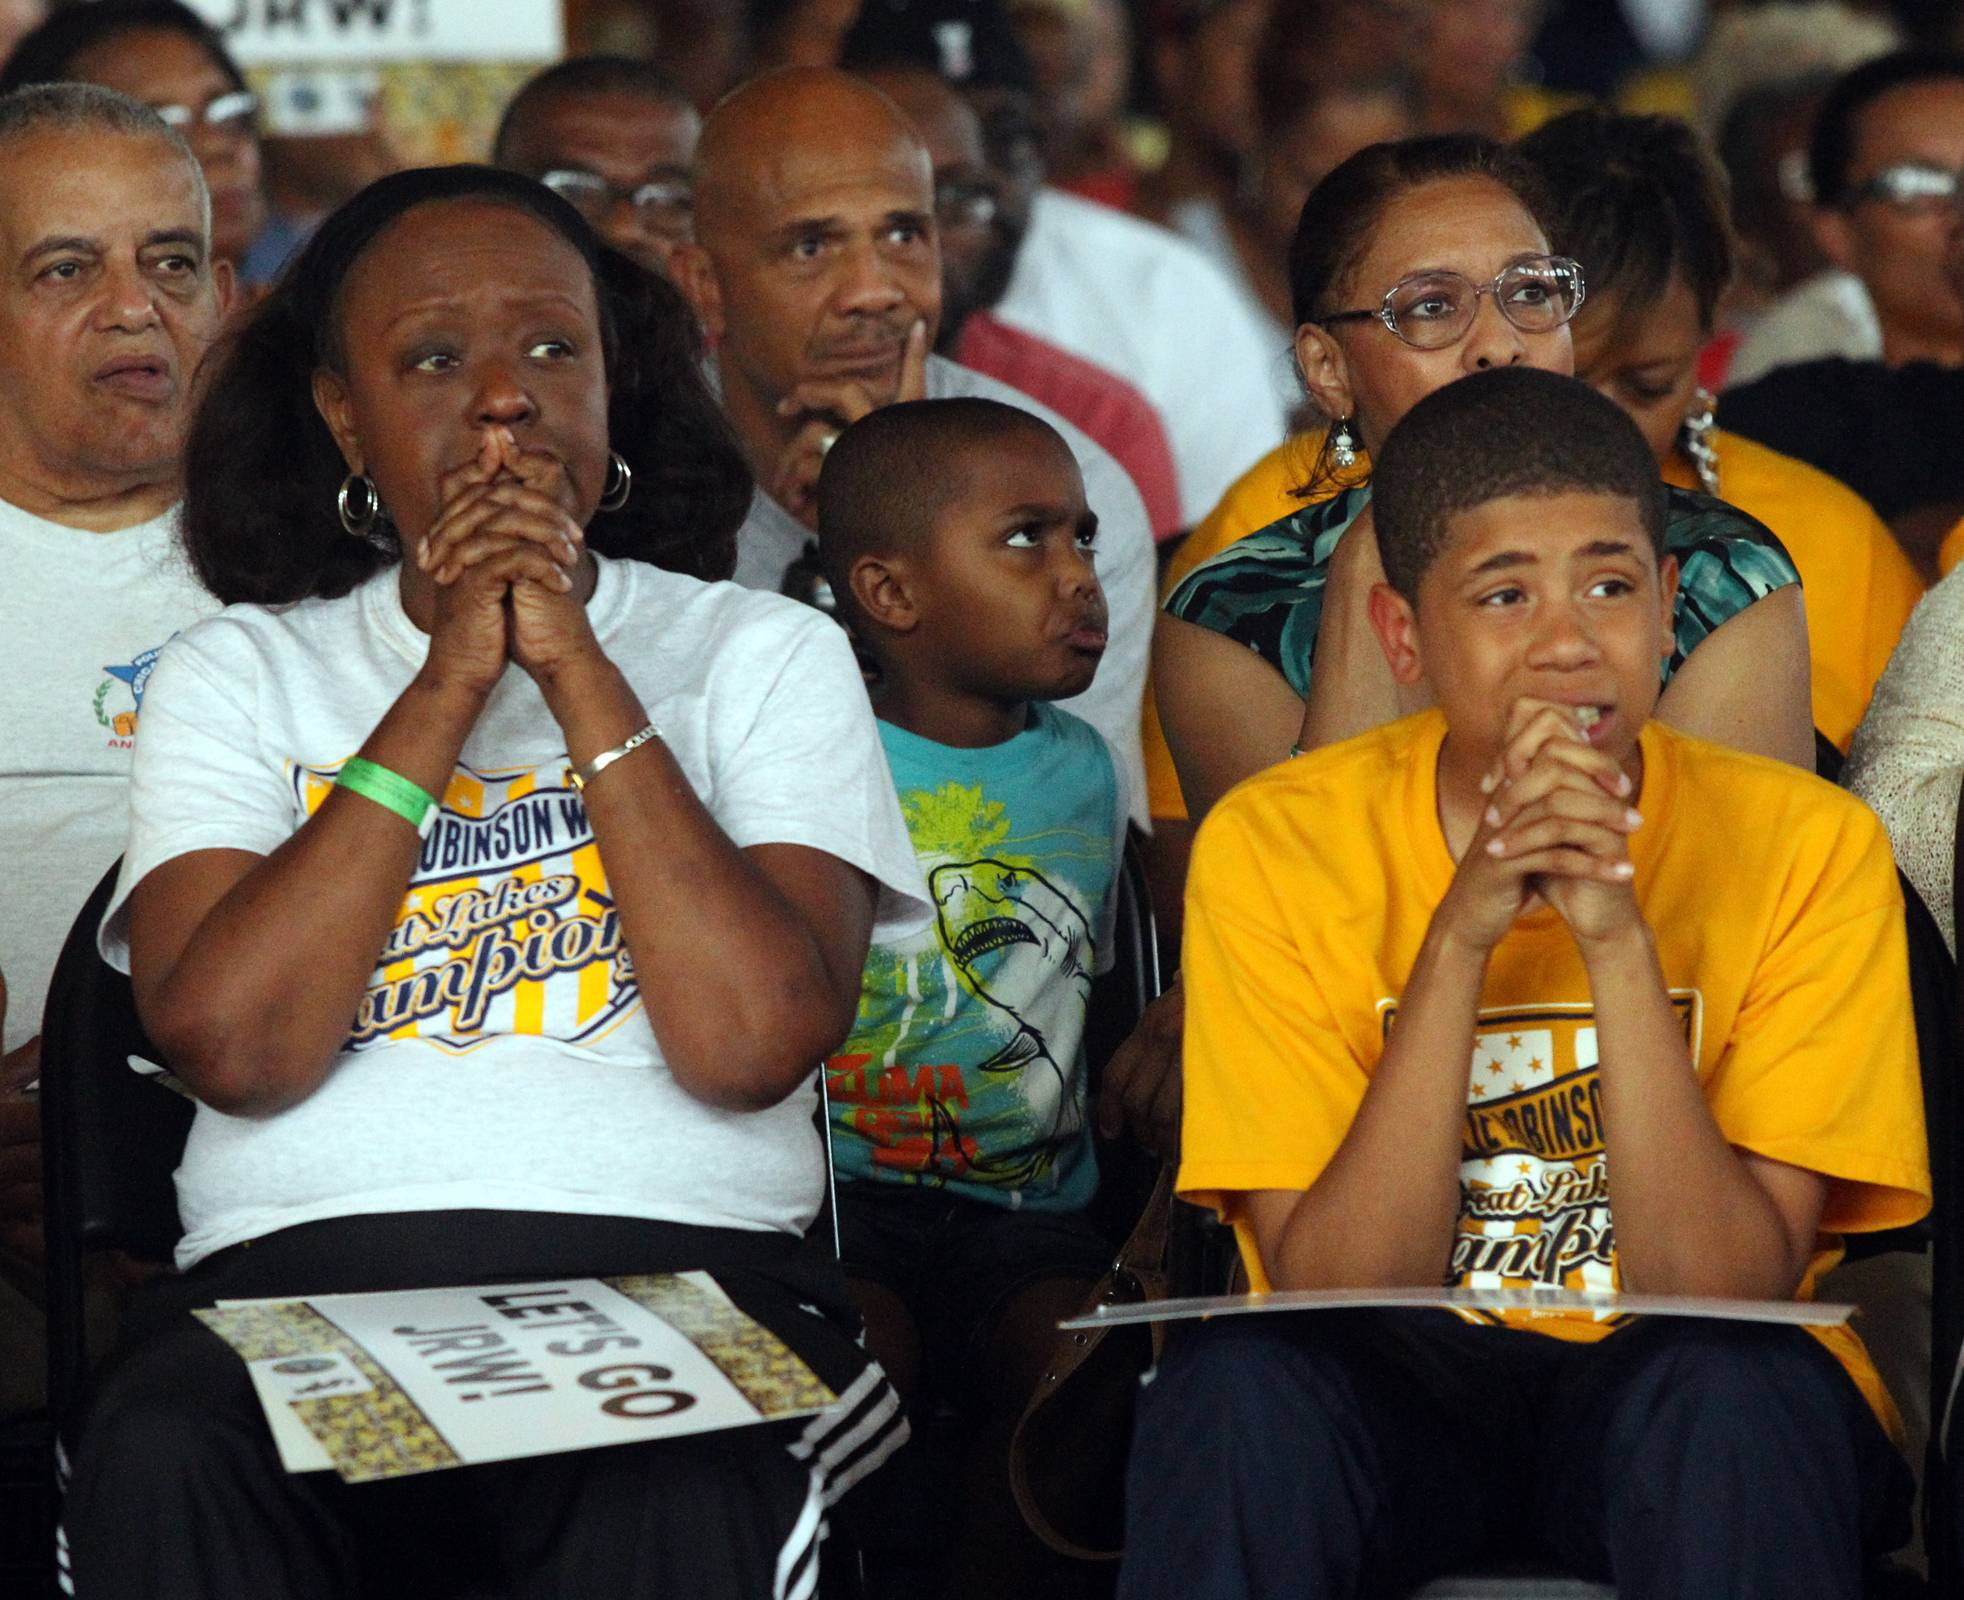 Chicagoans Beverly Harris, left, and Kameron Betton, worry as they watch the Jackie Robinson West team in their last at-bat in the Little League World Series as they watched at the Salvation Army Kroc Community Center in Chicago Sunday. The Jackie Robinson West team lost to South Korea 8-4.